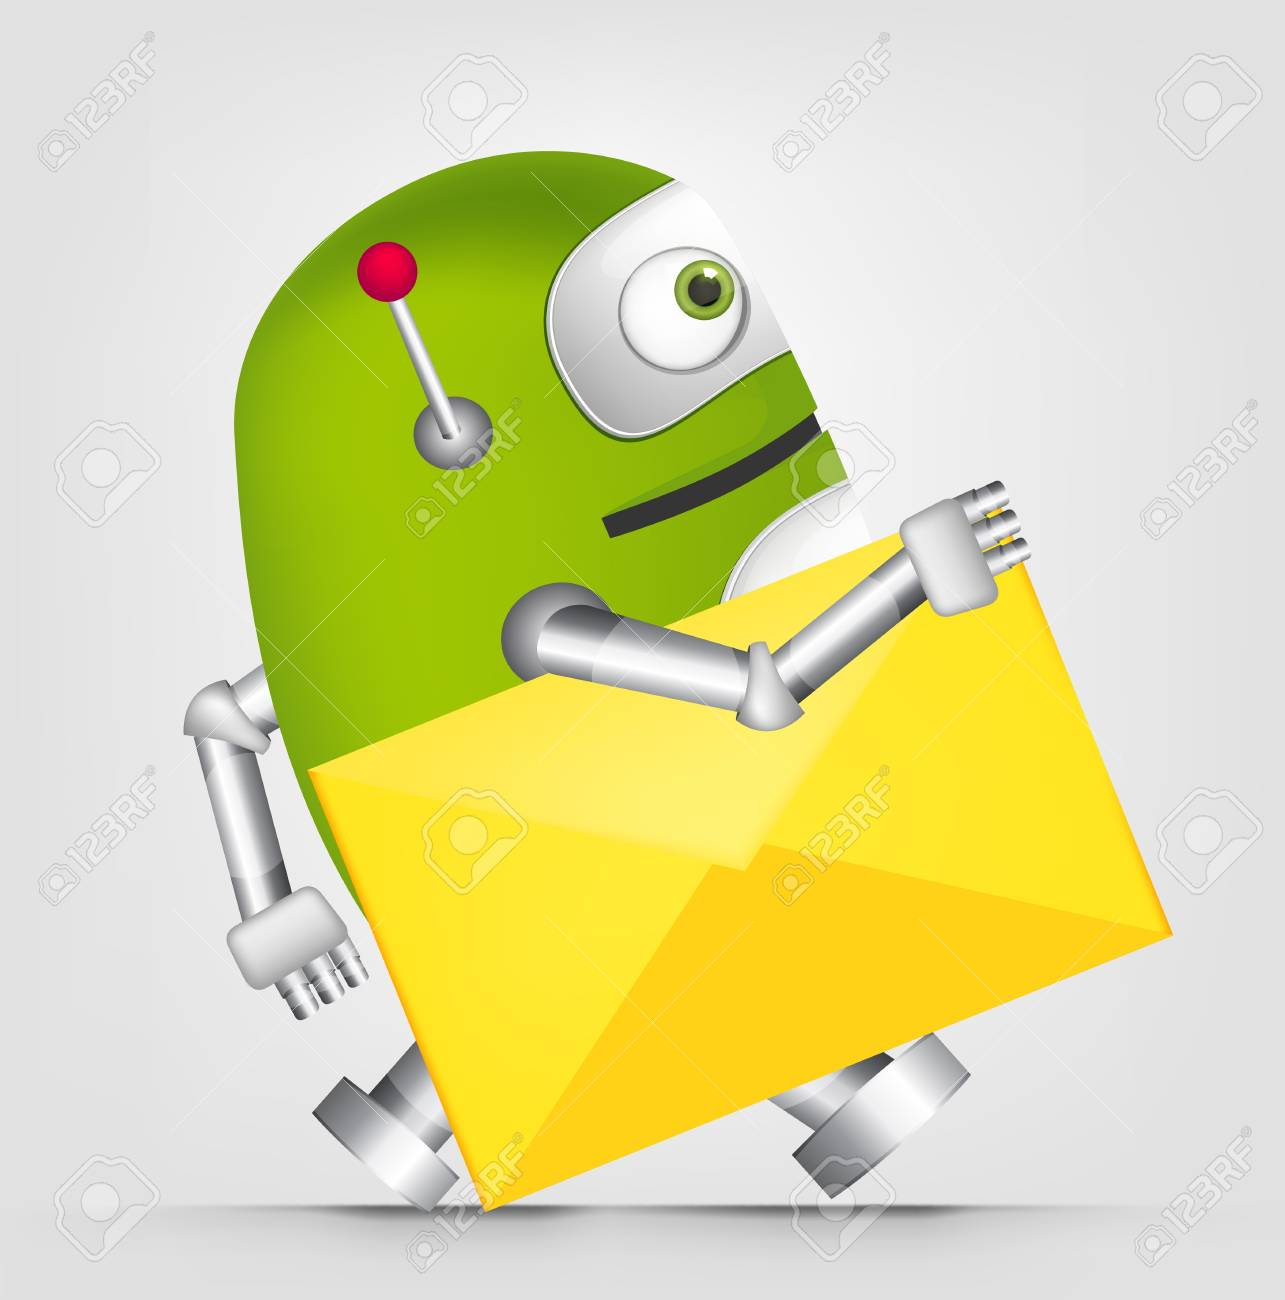 Cute Robot Stock Vector - 16065762